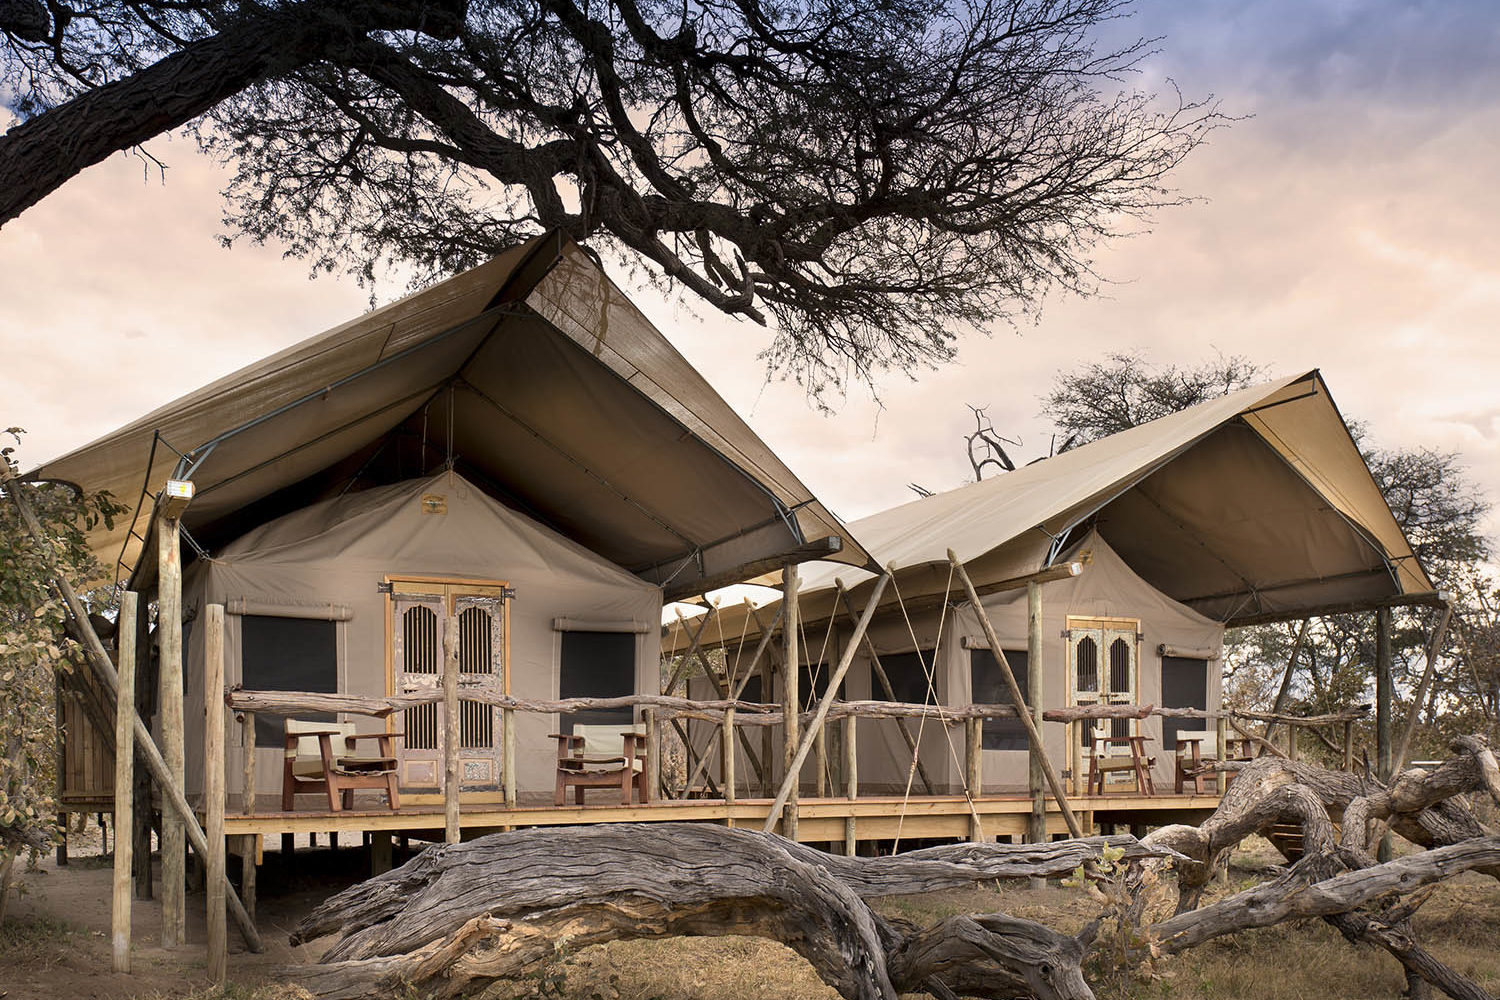 somalisa expeditions zimbabwe-zambia-in-style-hwange-national-park-african-bush-camps-traditional-safari-experience-bedrooms-from-outside